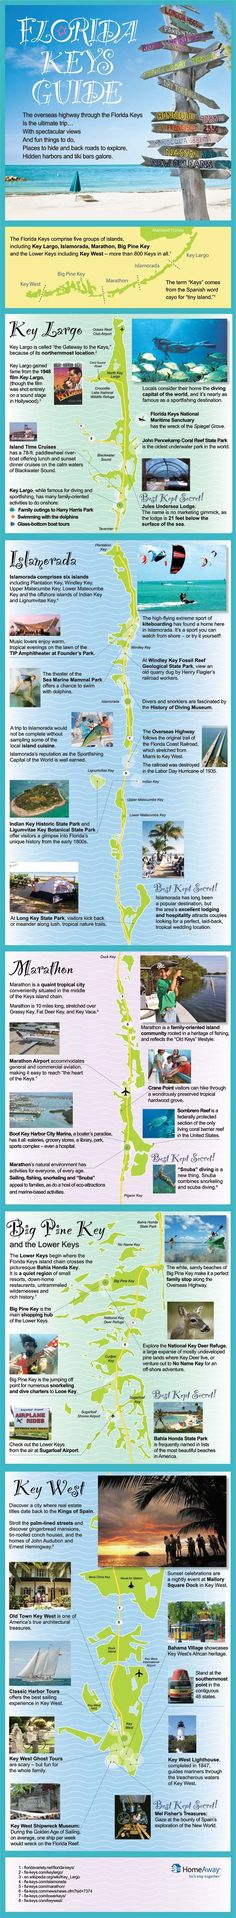 Where to Go in the Florida Keys [Infographic]